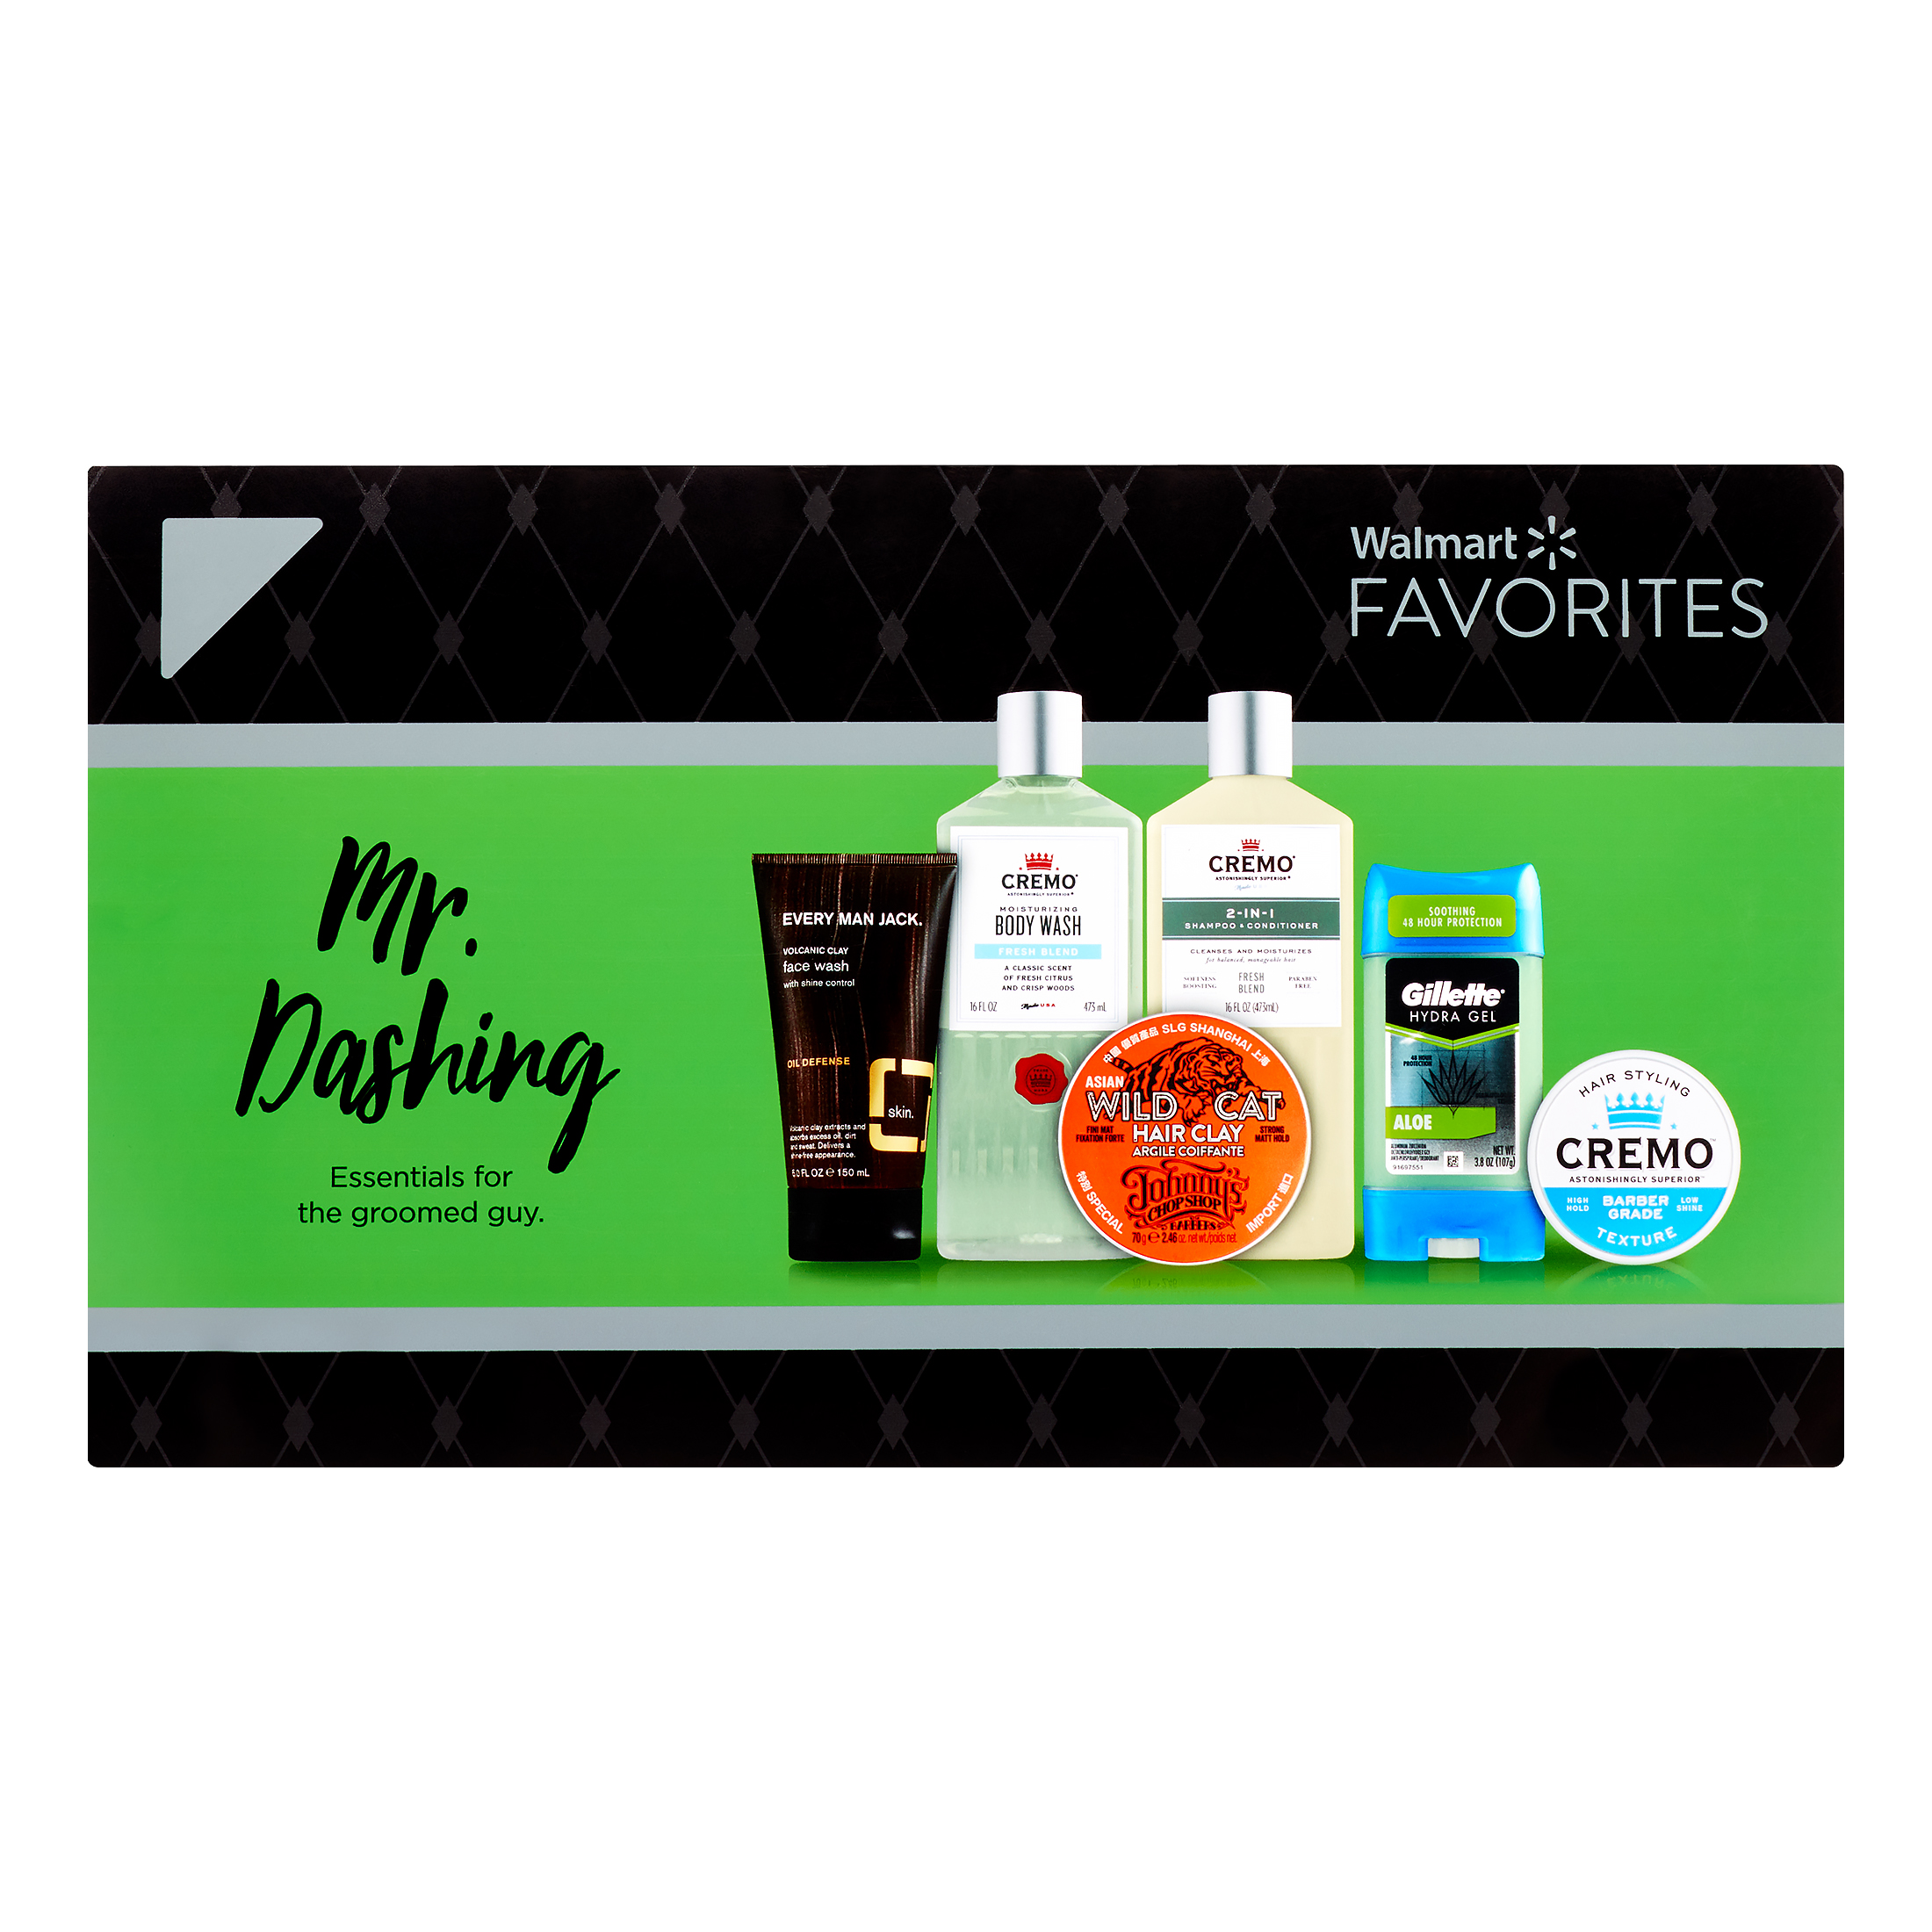 Walmart Beauty Favorites - Mr. Dashing